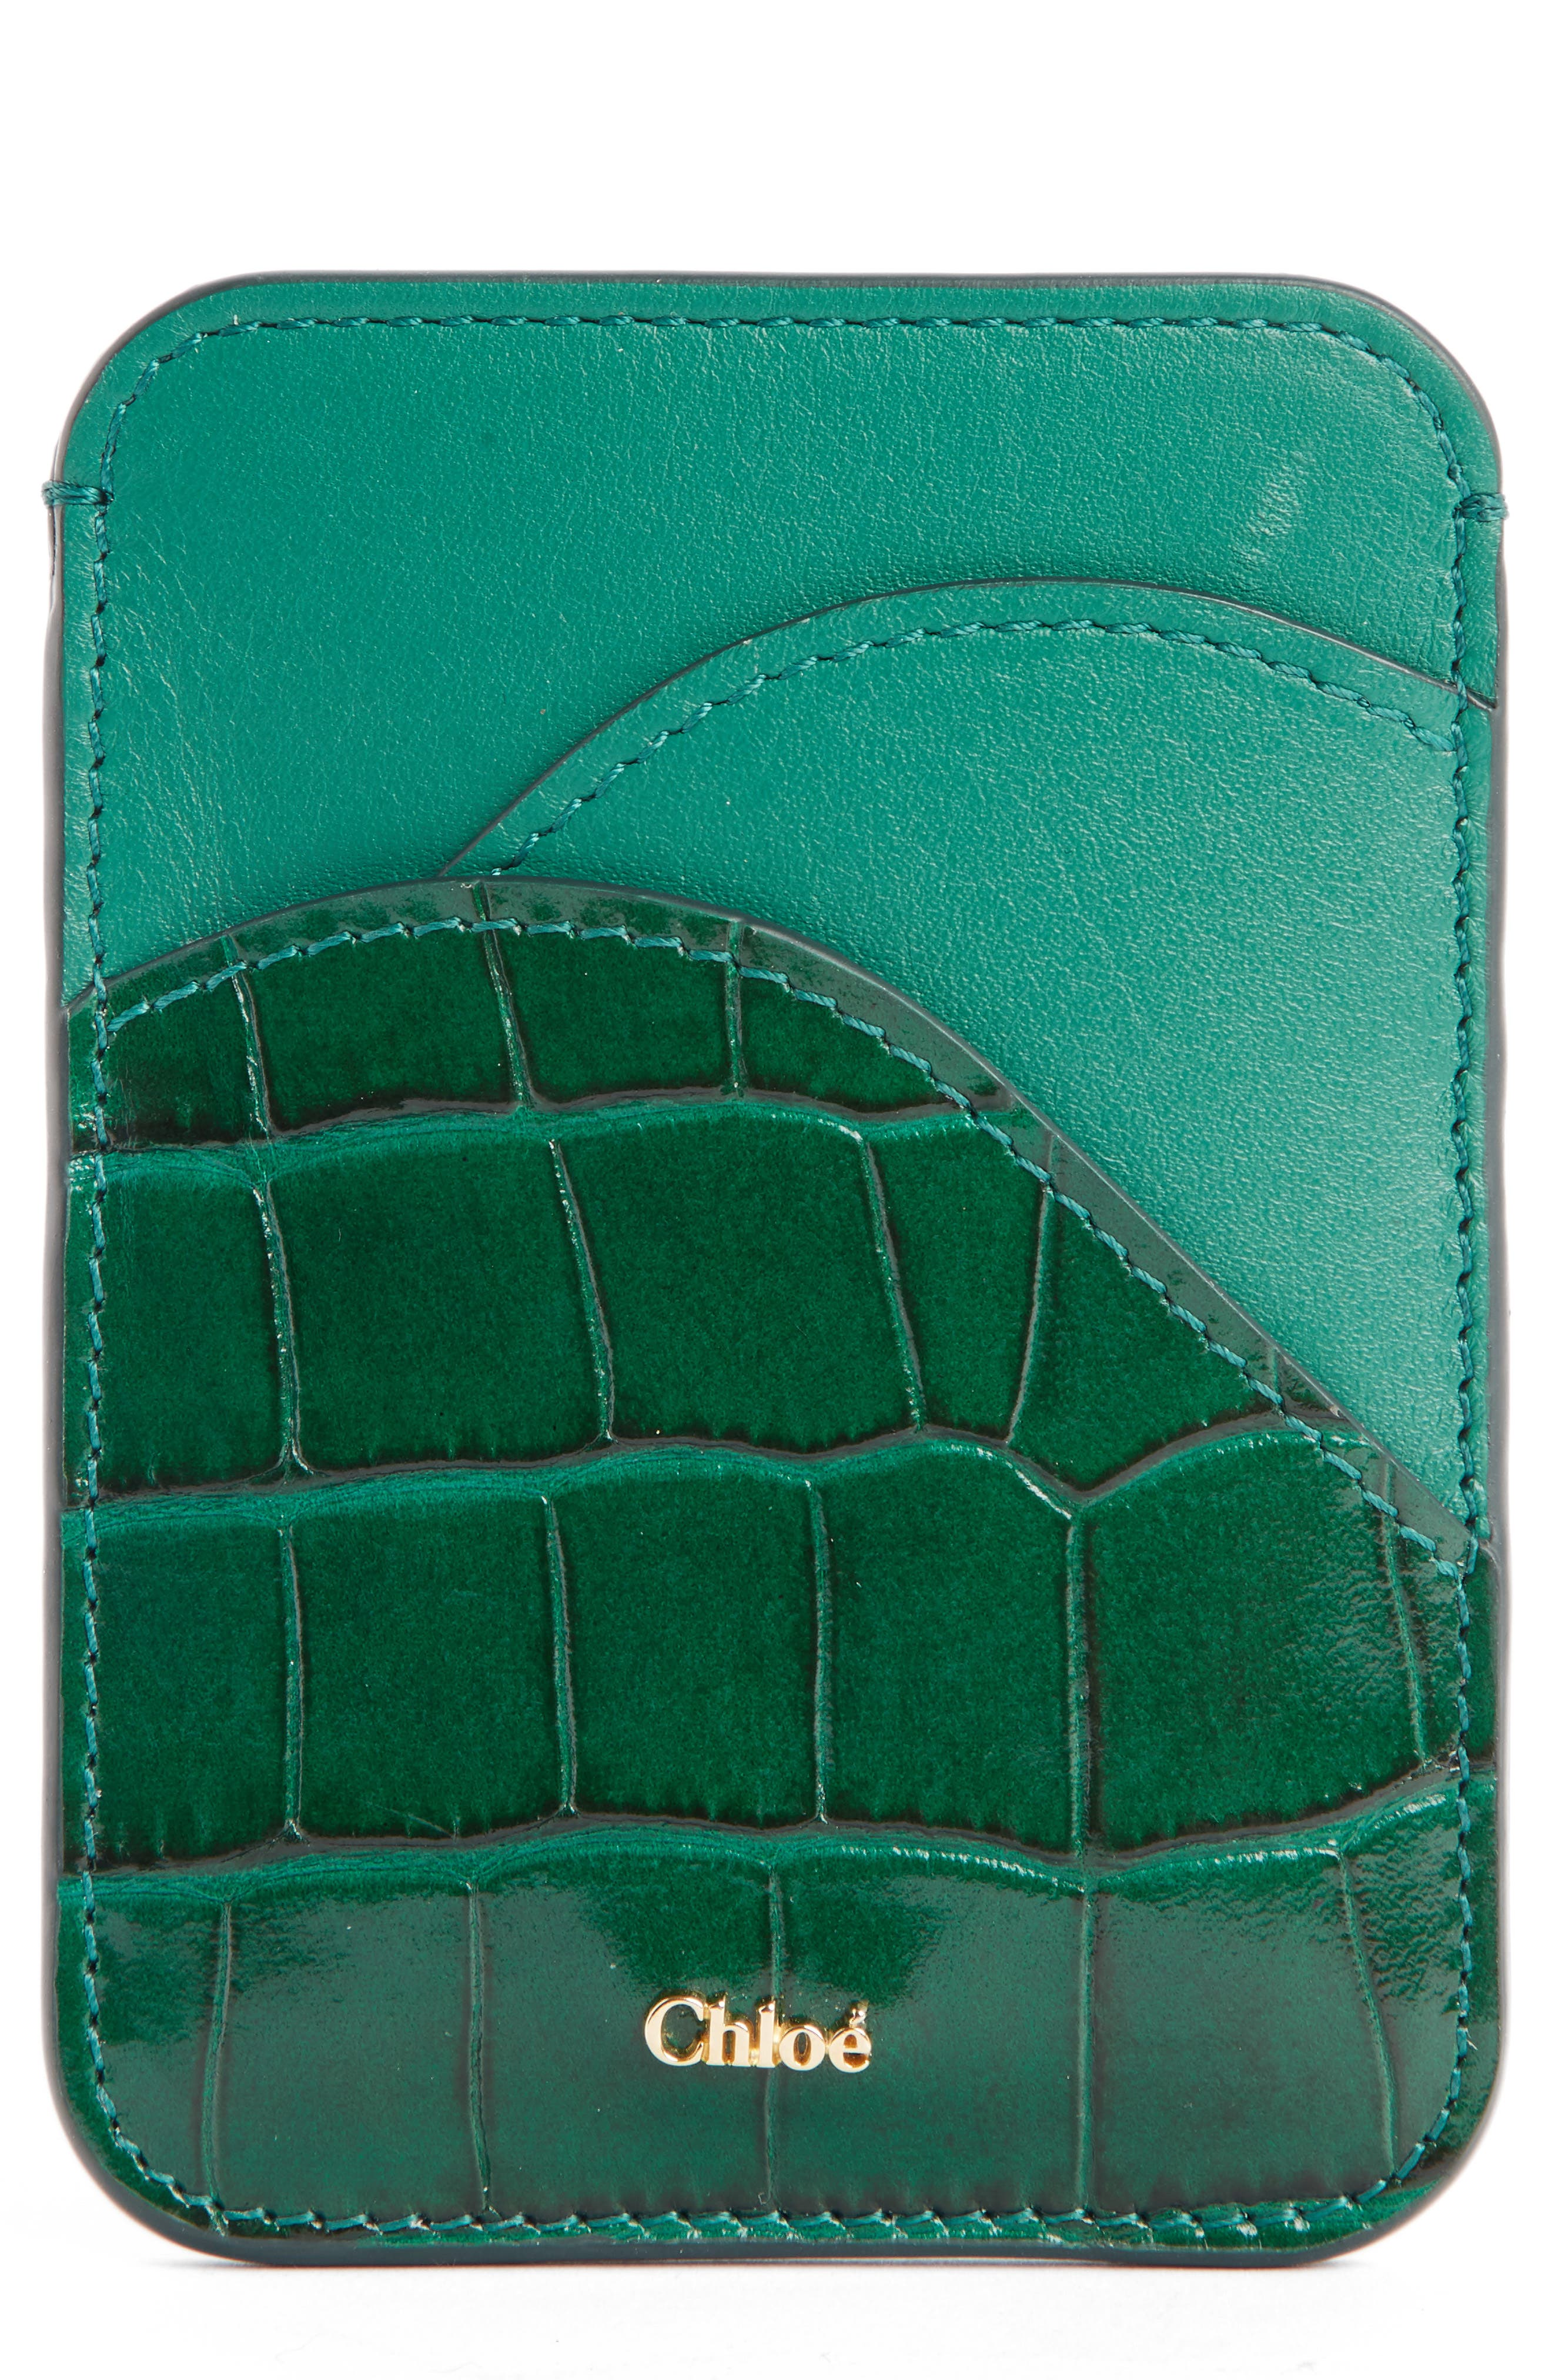 Walden Croc Embossed Leather Card Holder,                             Main thumbnail 1, color,                             WOODSY GREEN